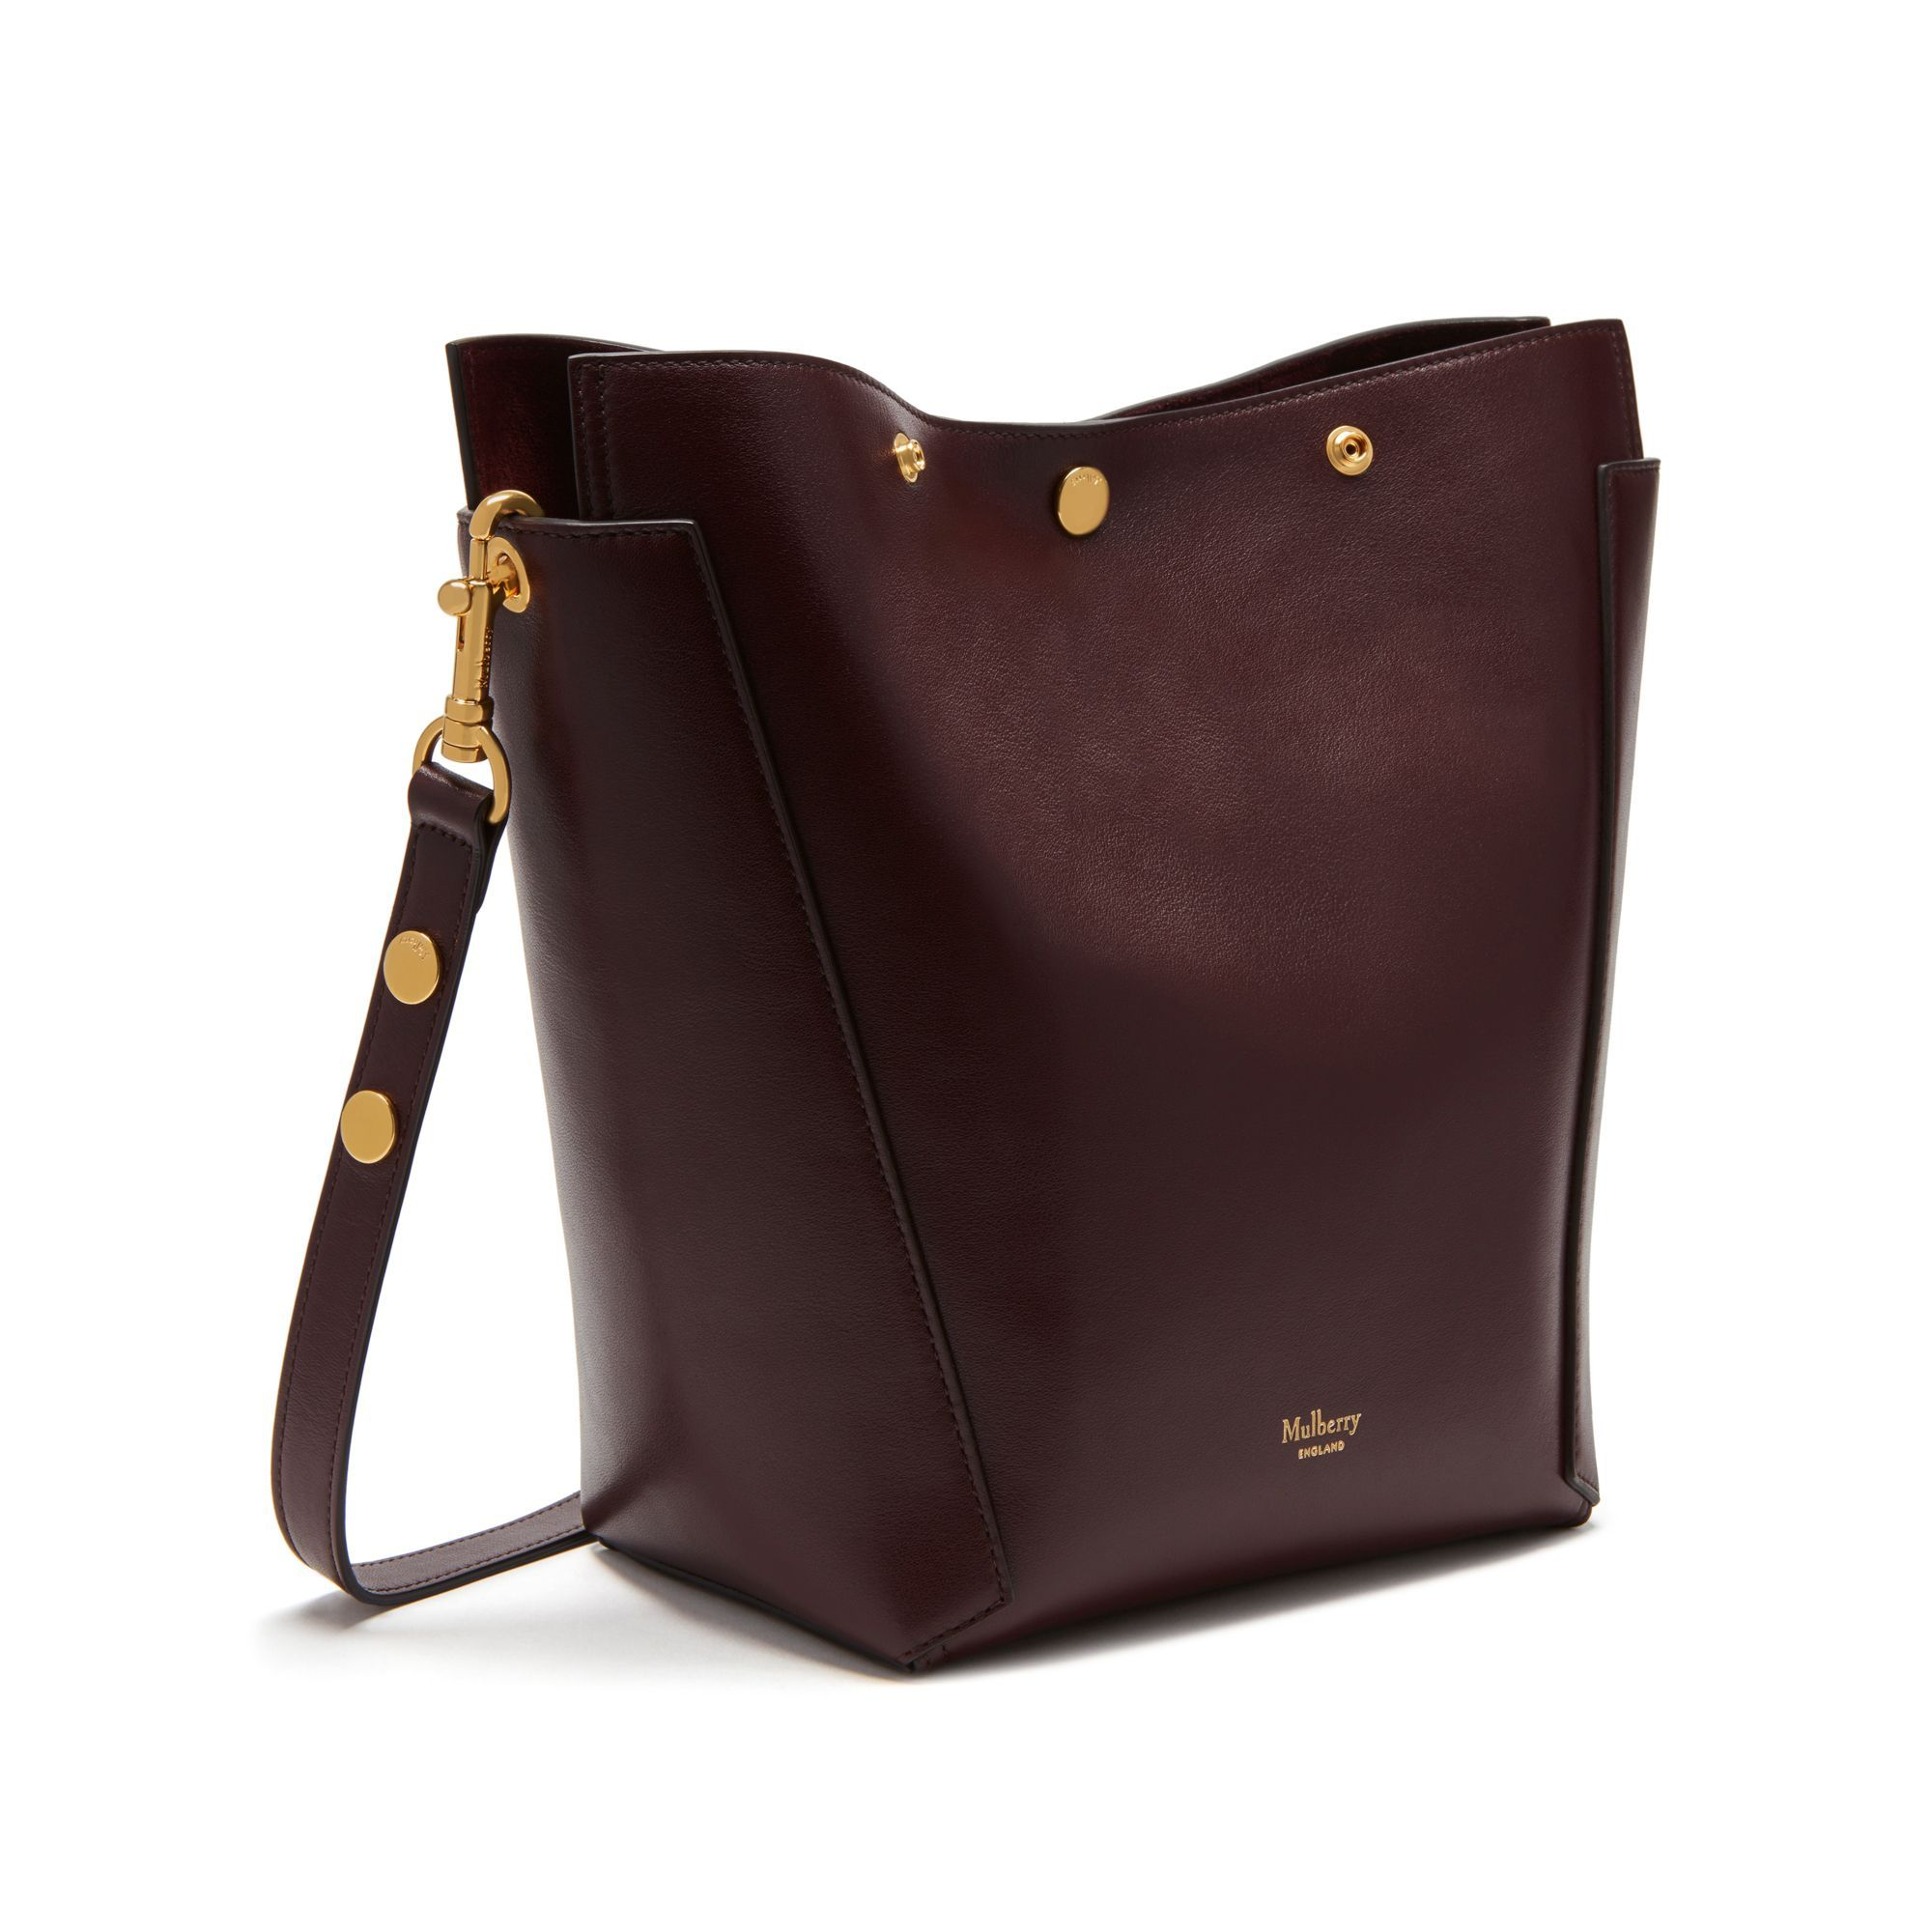 f923b8806fb7 Shop the Small Camden in Oxblood Smooth Calf Leather at Mulberry.com.  Introducing the Small Camden. First introduced last season